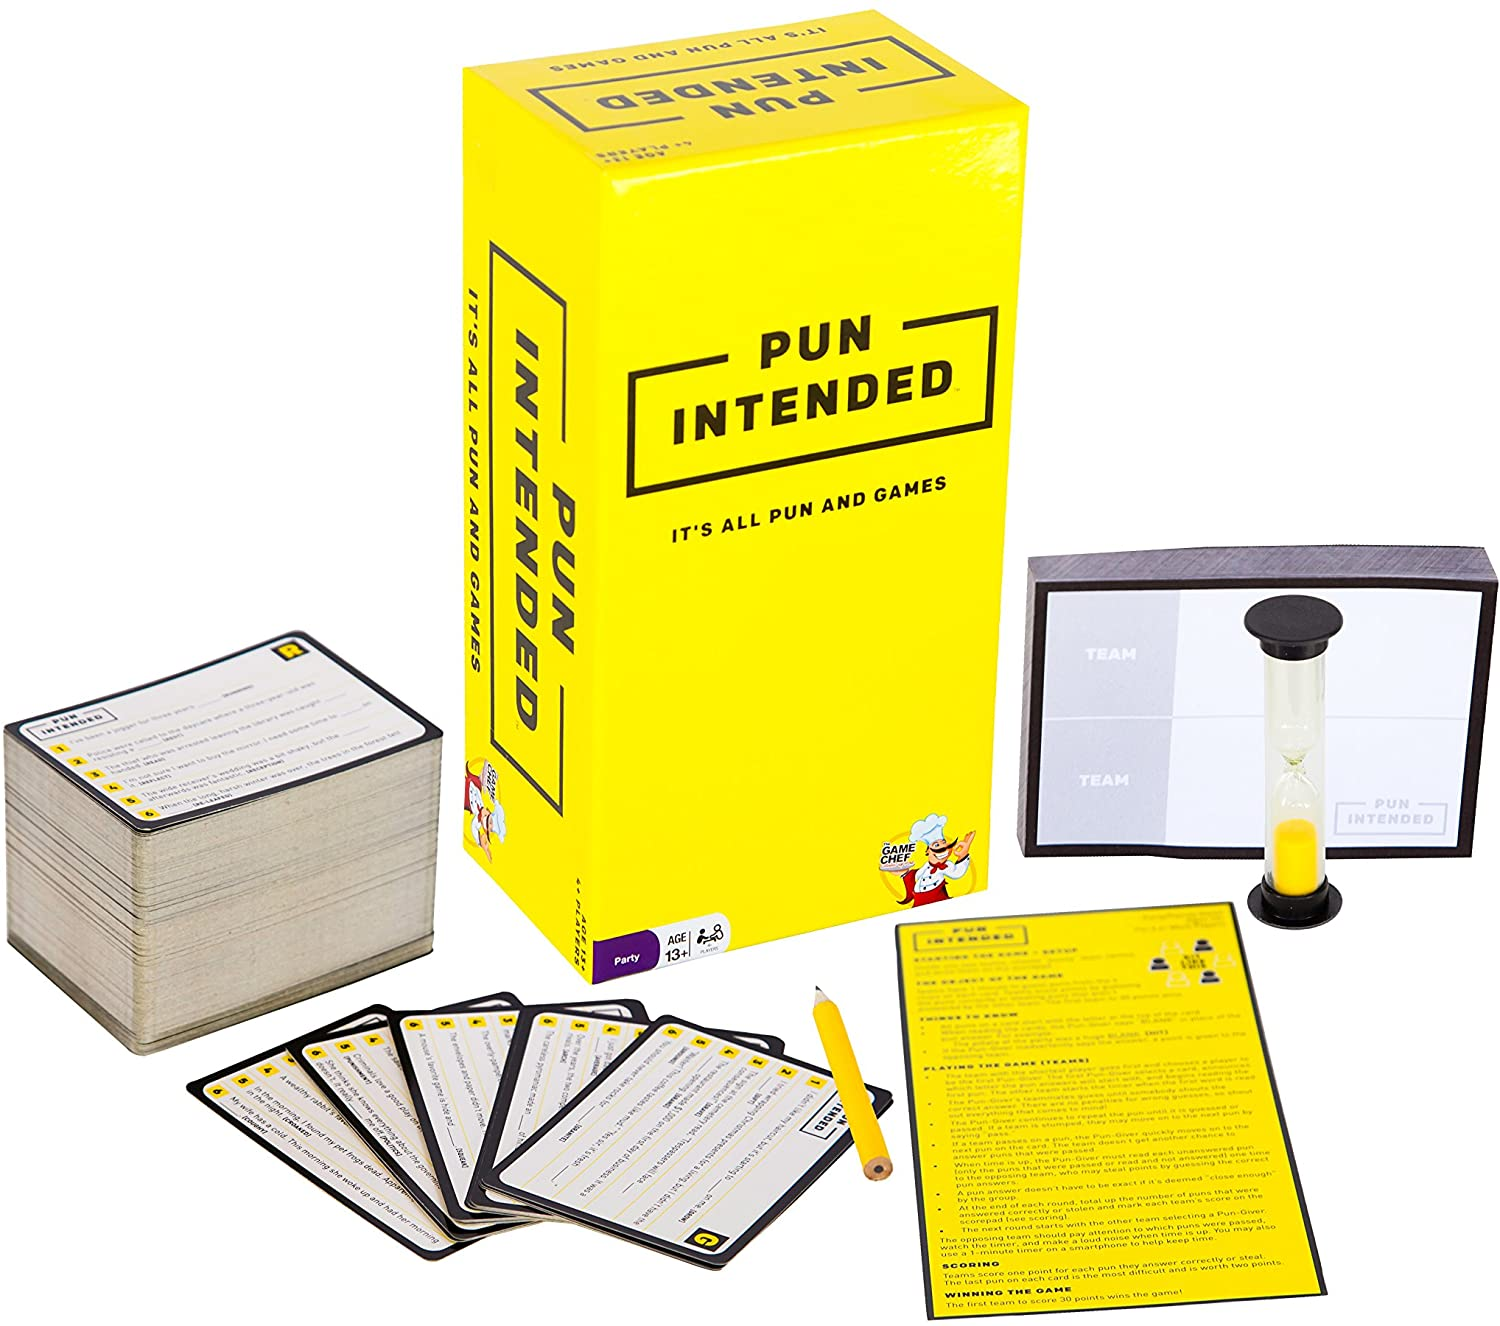 The cards, timer, and score card from Pun Intended next to its box.